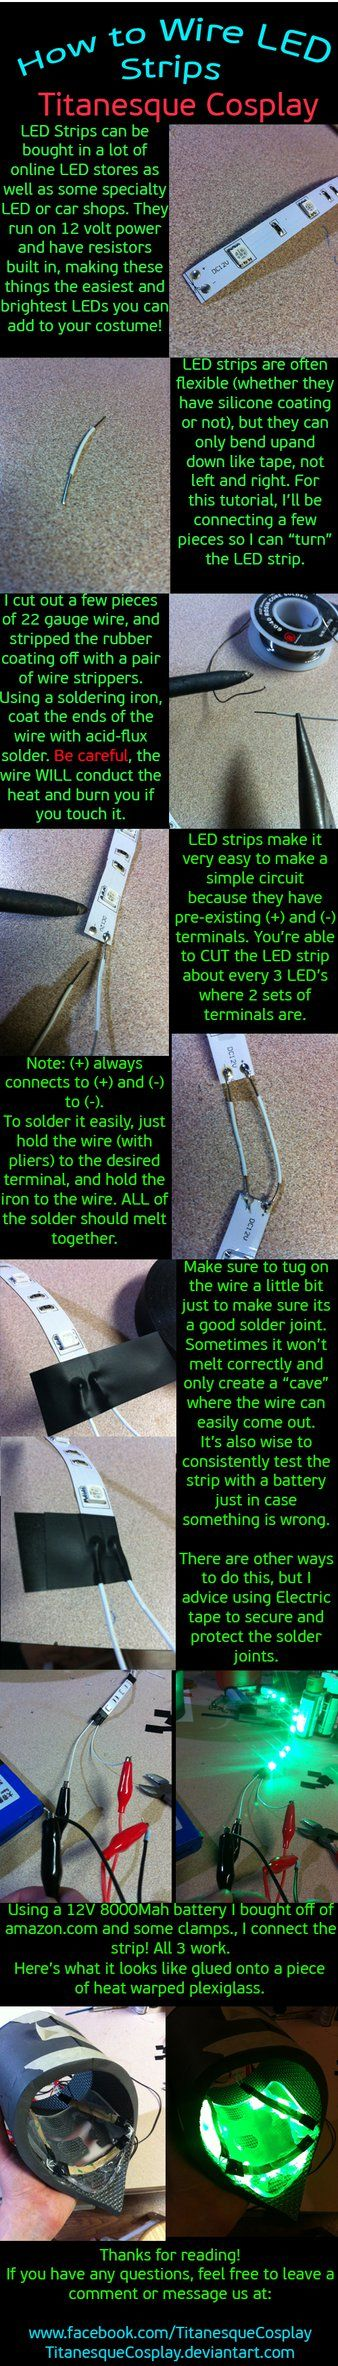 How to wire LED Strips by TitanesqueCosplay on deviantART ...